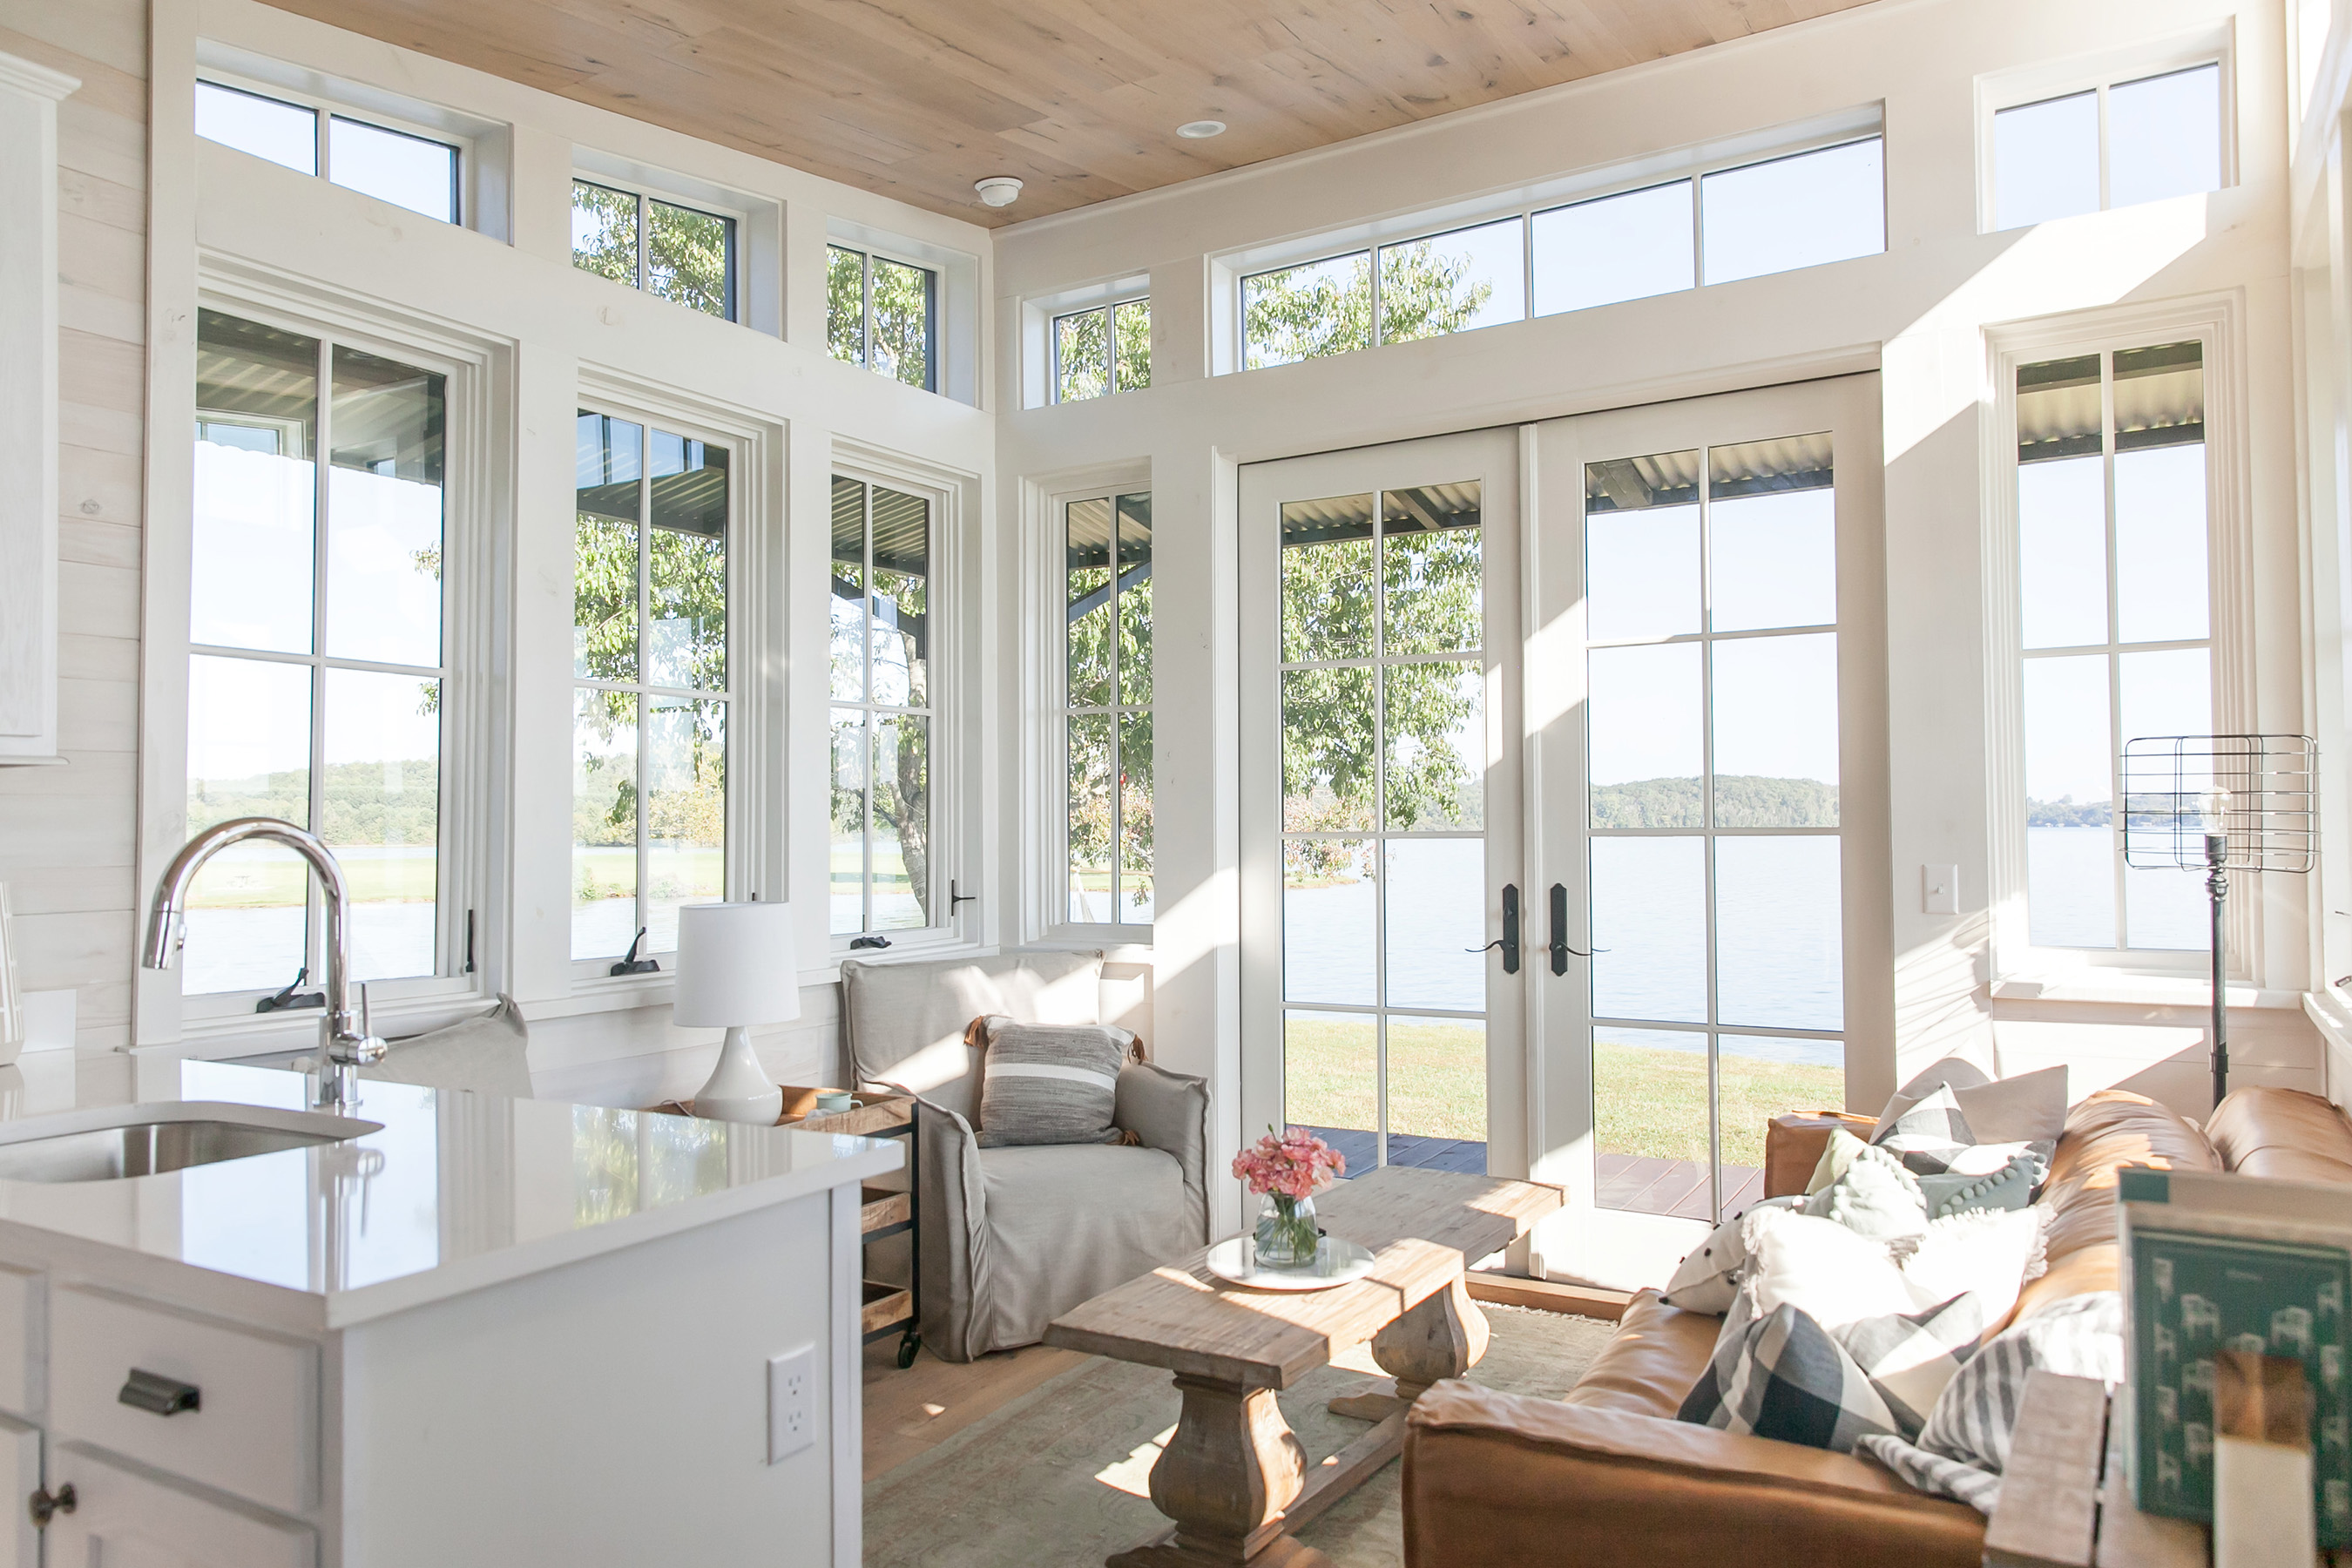 With windows surrounding the house, Saltbox owners can enjoy 270-degree views year-round.